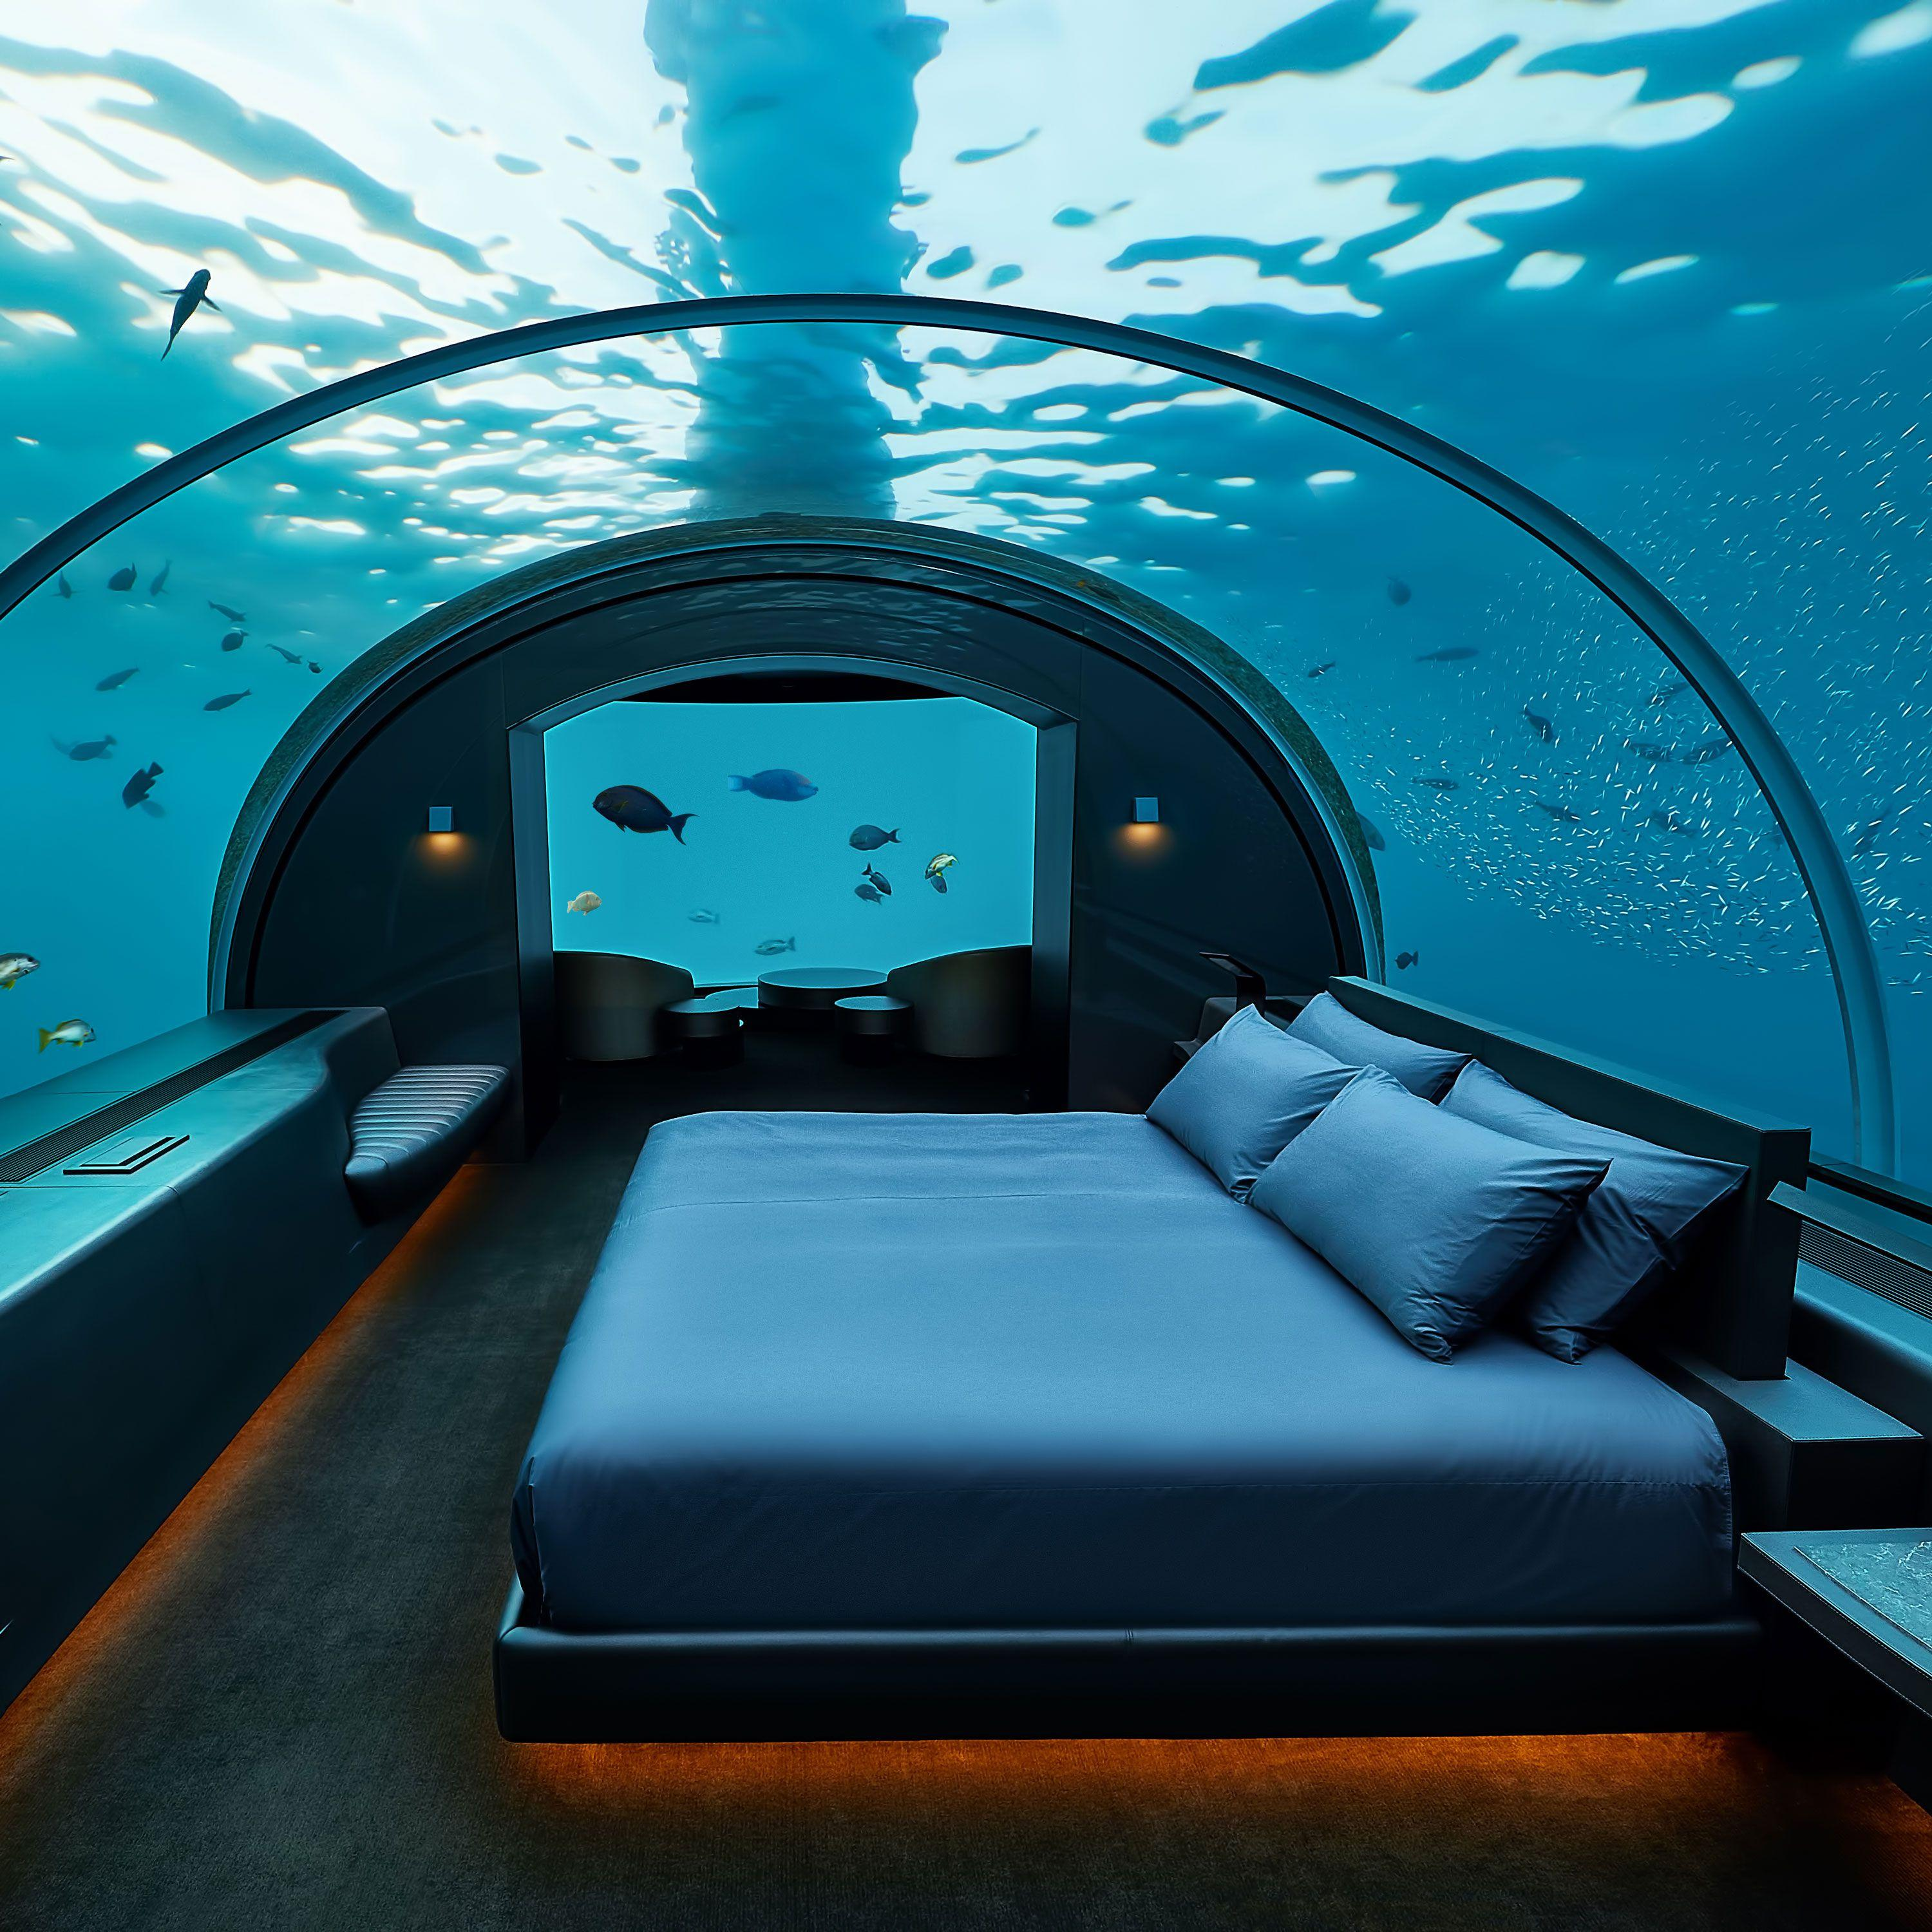 12 of the most jaw-dropping hotel beds that you will never